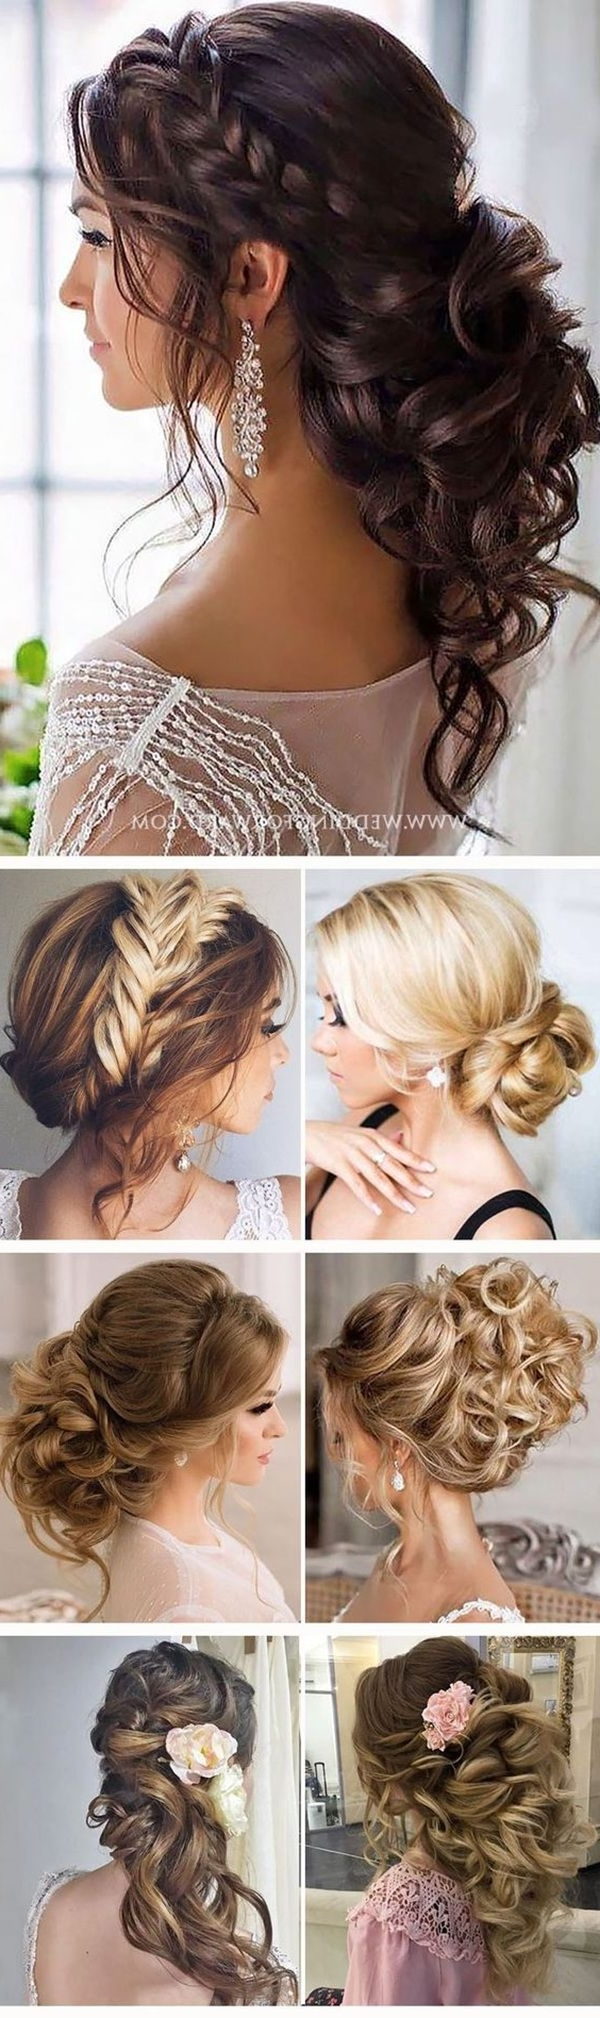 Pinterest For Recent Maid Of Honor Wedding Hairstyles (View 9 of 15)